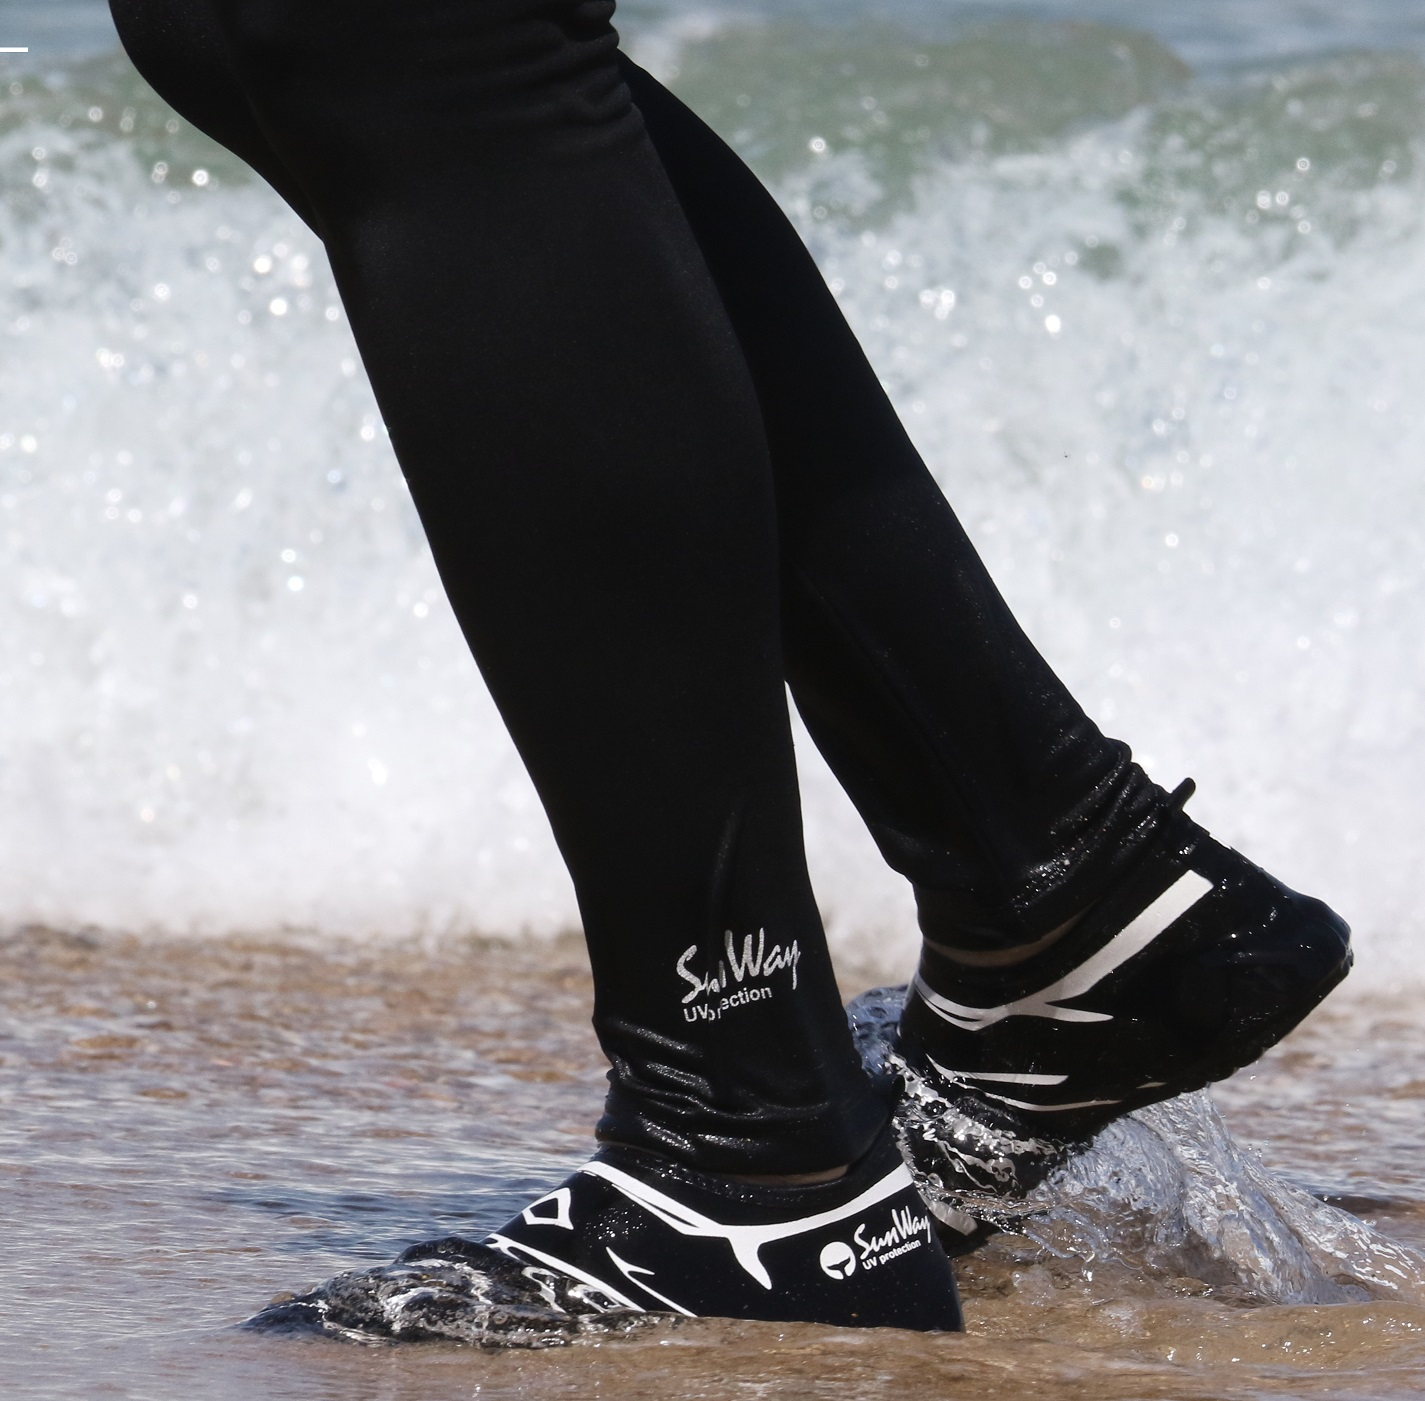 Neoprane shoes watersports shoes